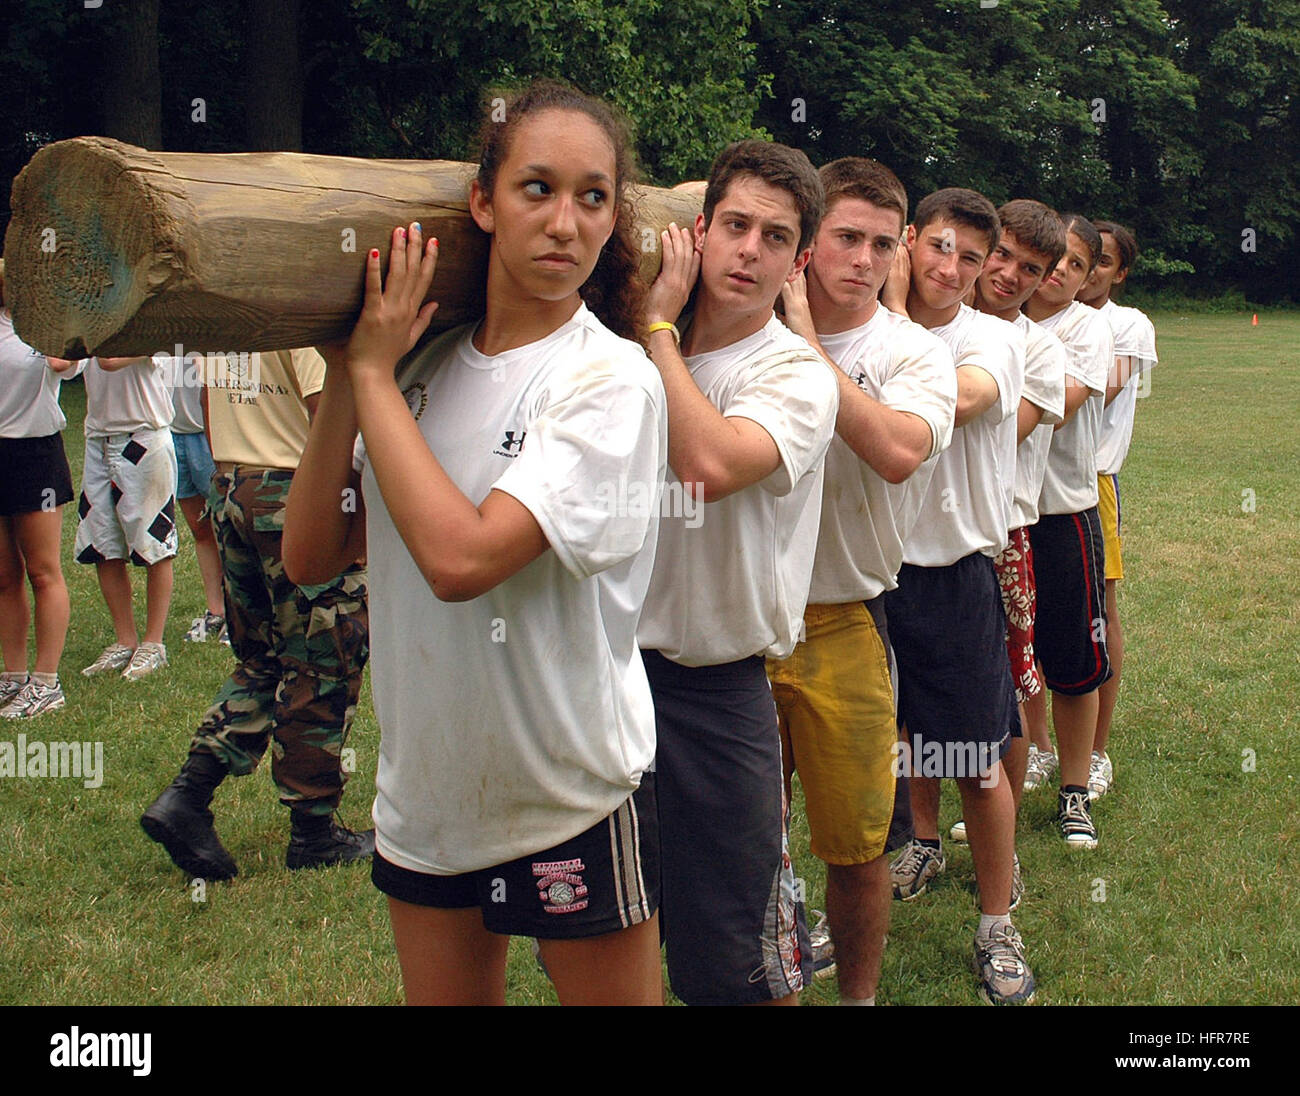 060620-N-5215E-001 Annapolis, Md. (June 22, 2006) - High school students participate in log PT as part of the U.S. Stock Photo